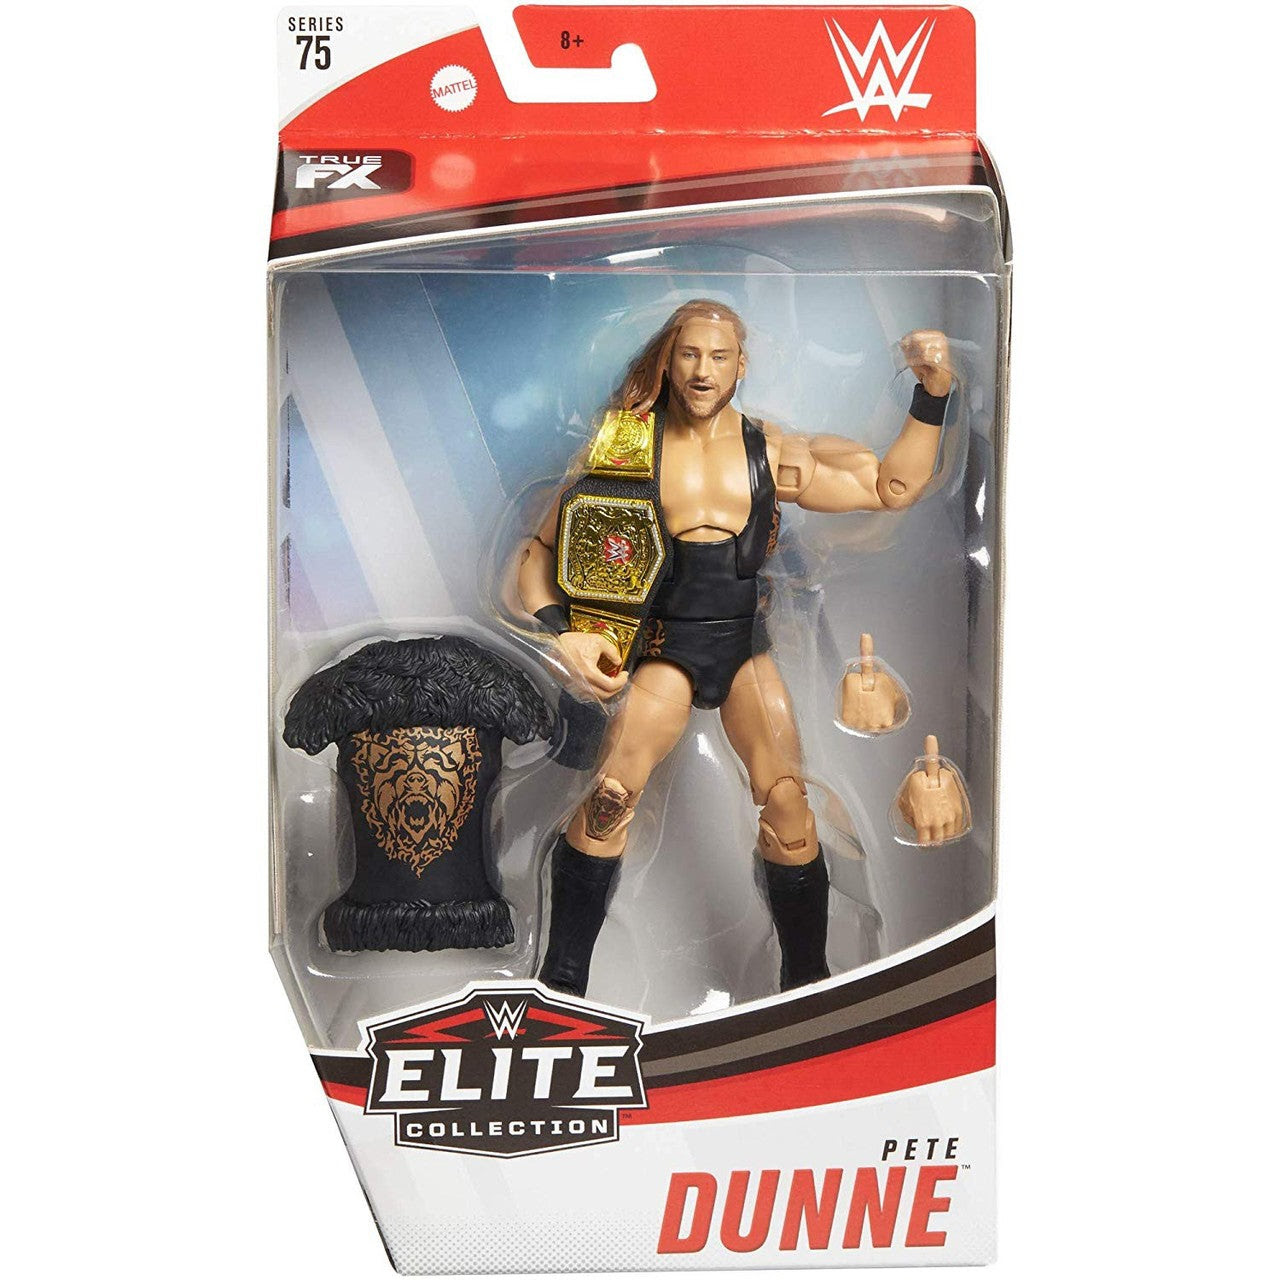 Image of WWE Elite Collection Series 75 - Pete Dunne